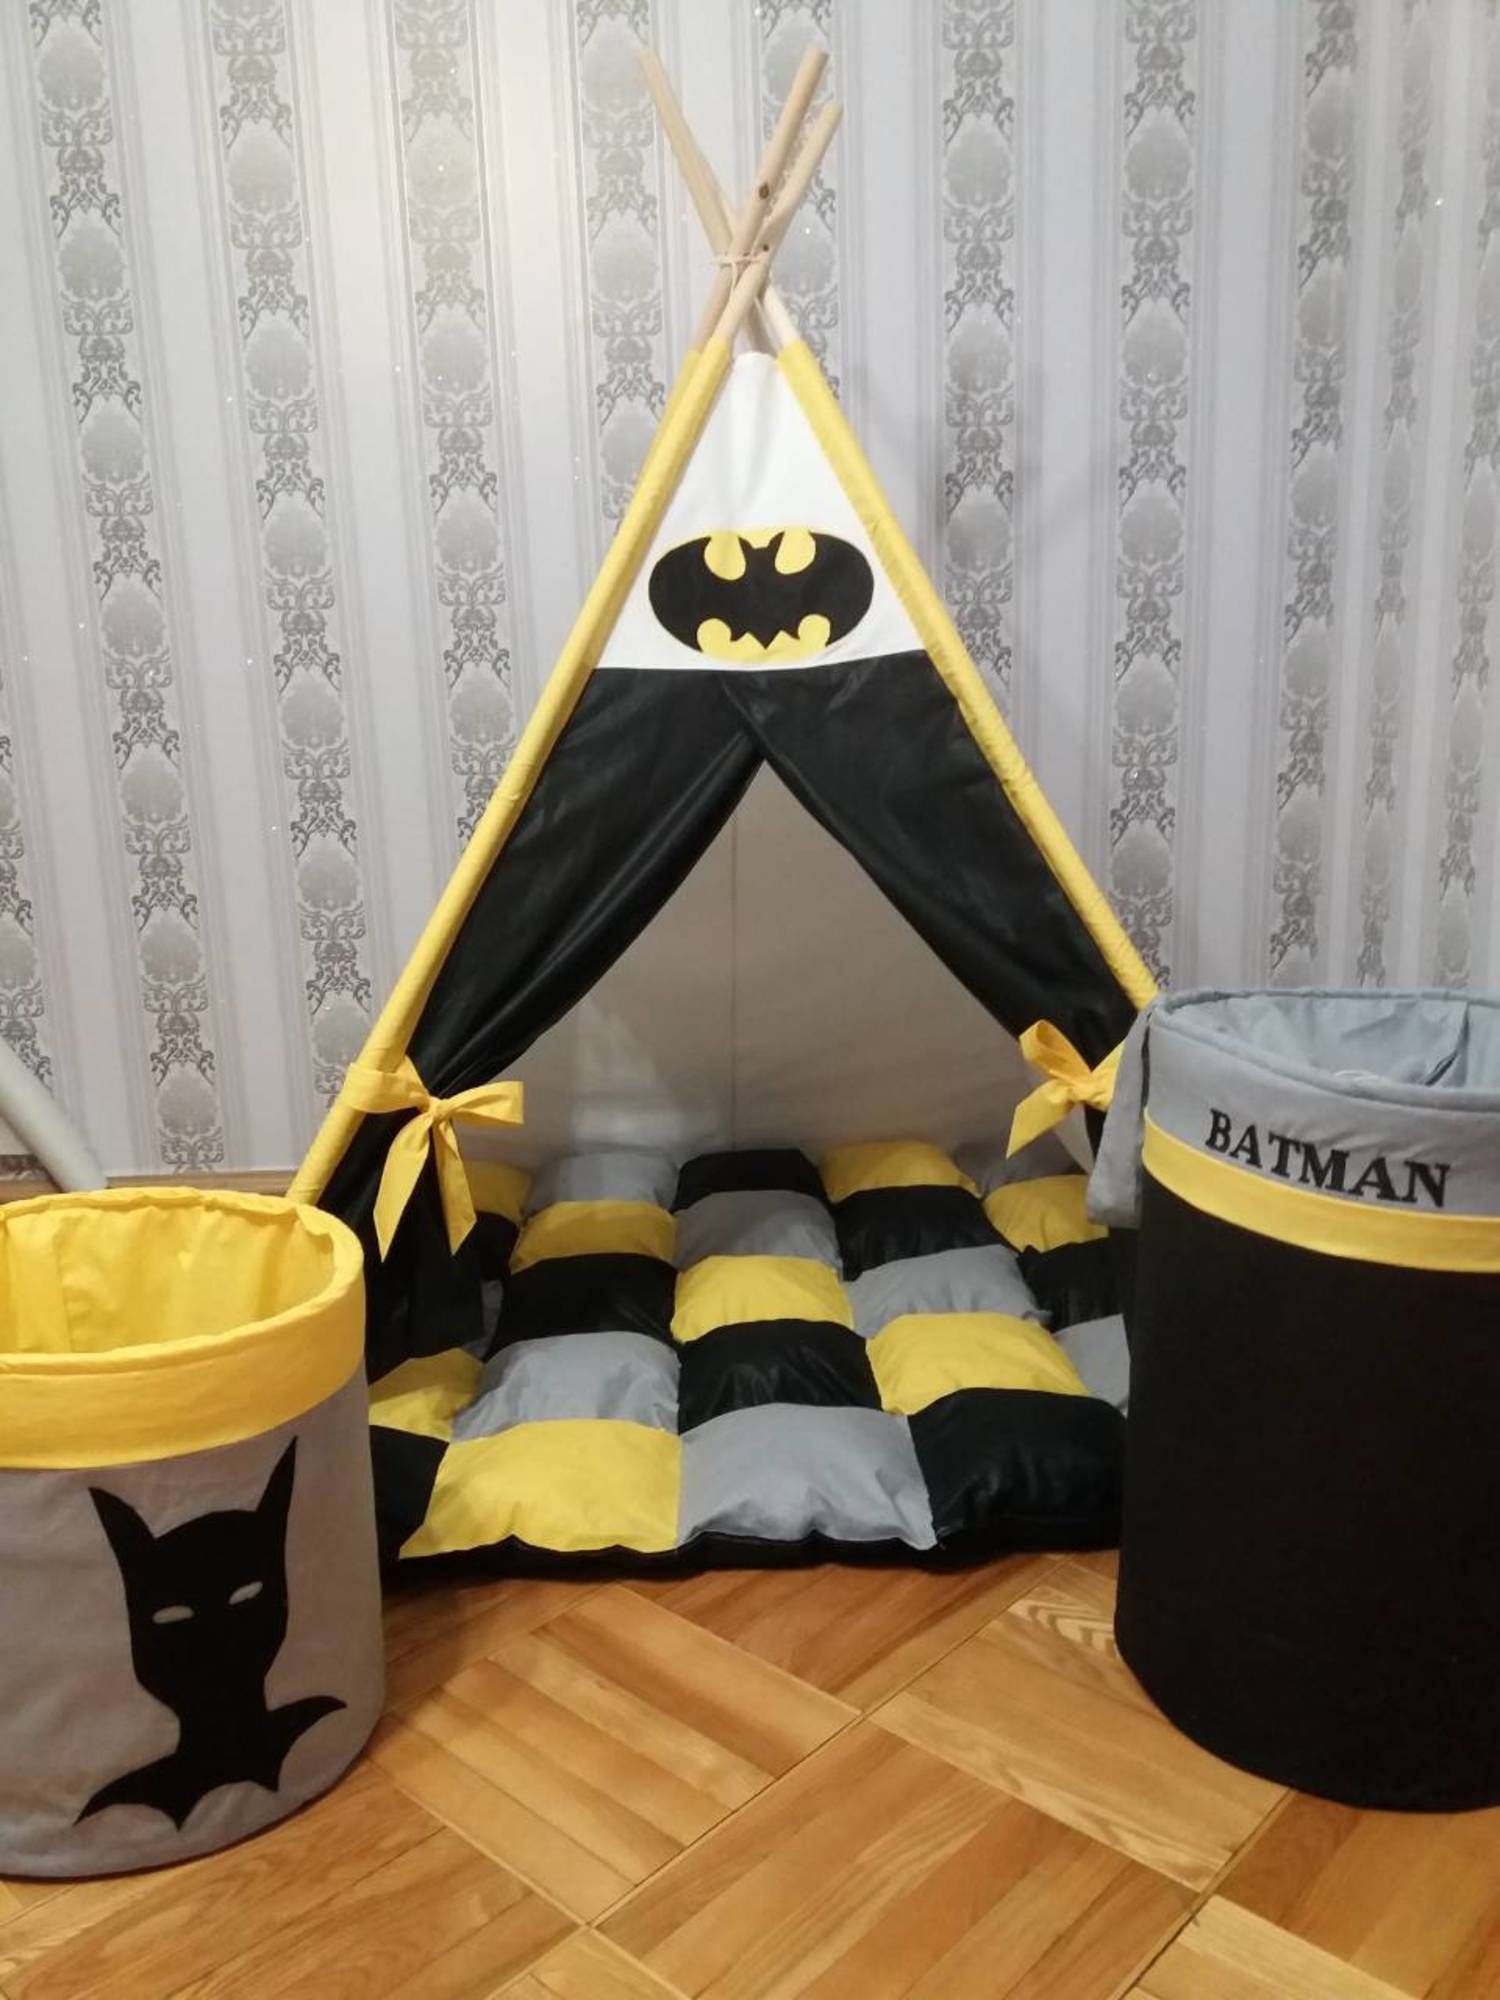 Teepee Set Teepee Tent Teepee For Superheroes Batman